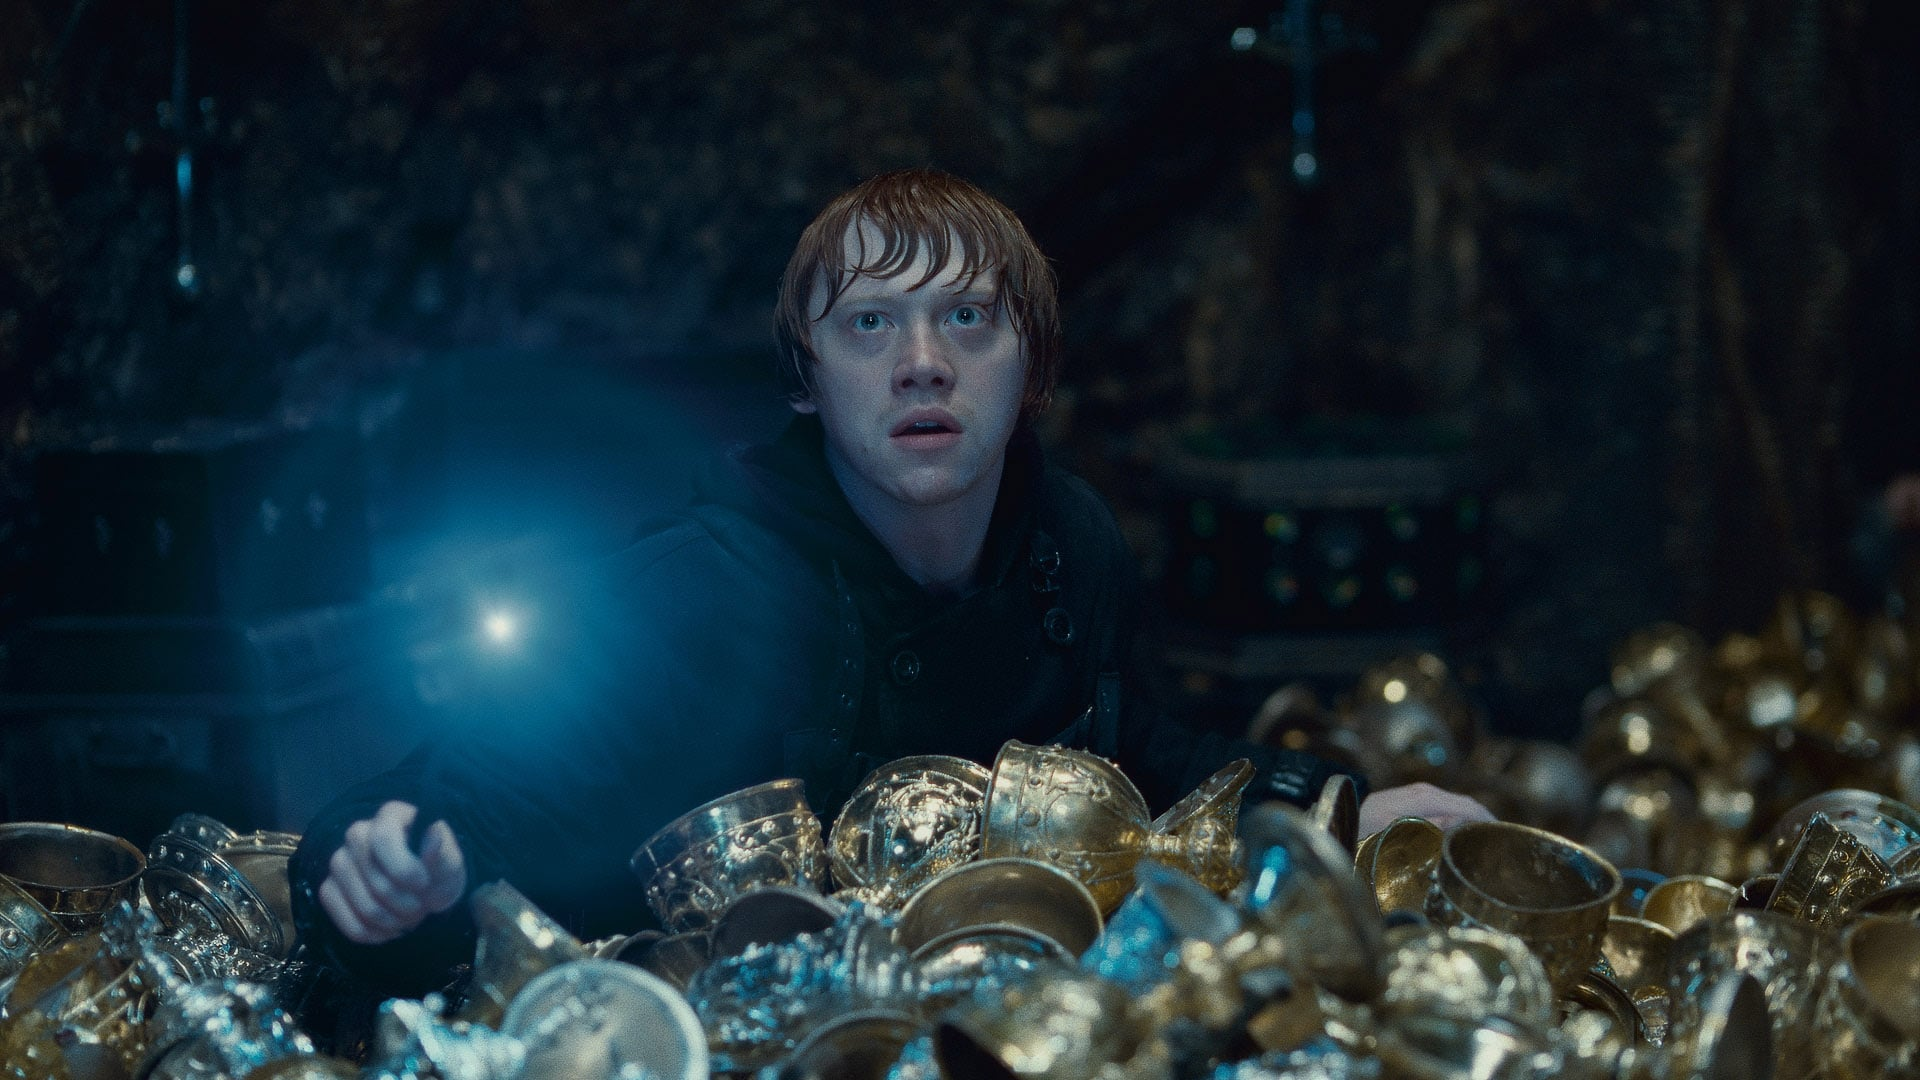 HARRY POTTER AND THE DEATHLY HALLOWS: PART 2, Rupert Grint, 2011. 2011 Warner Bros. Ent. Harry Potter publishing rights J.K.R. Harry Potter characters, names and related indicia are trademarks of and Warner Bros. Ent. All rights reserved./Courtesy Everett Collection